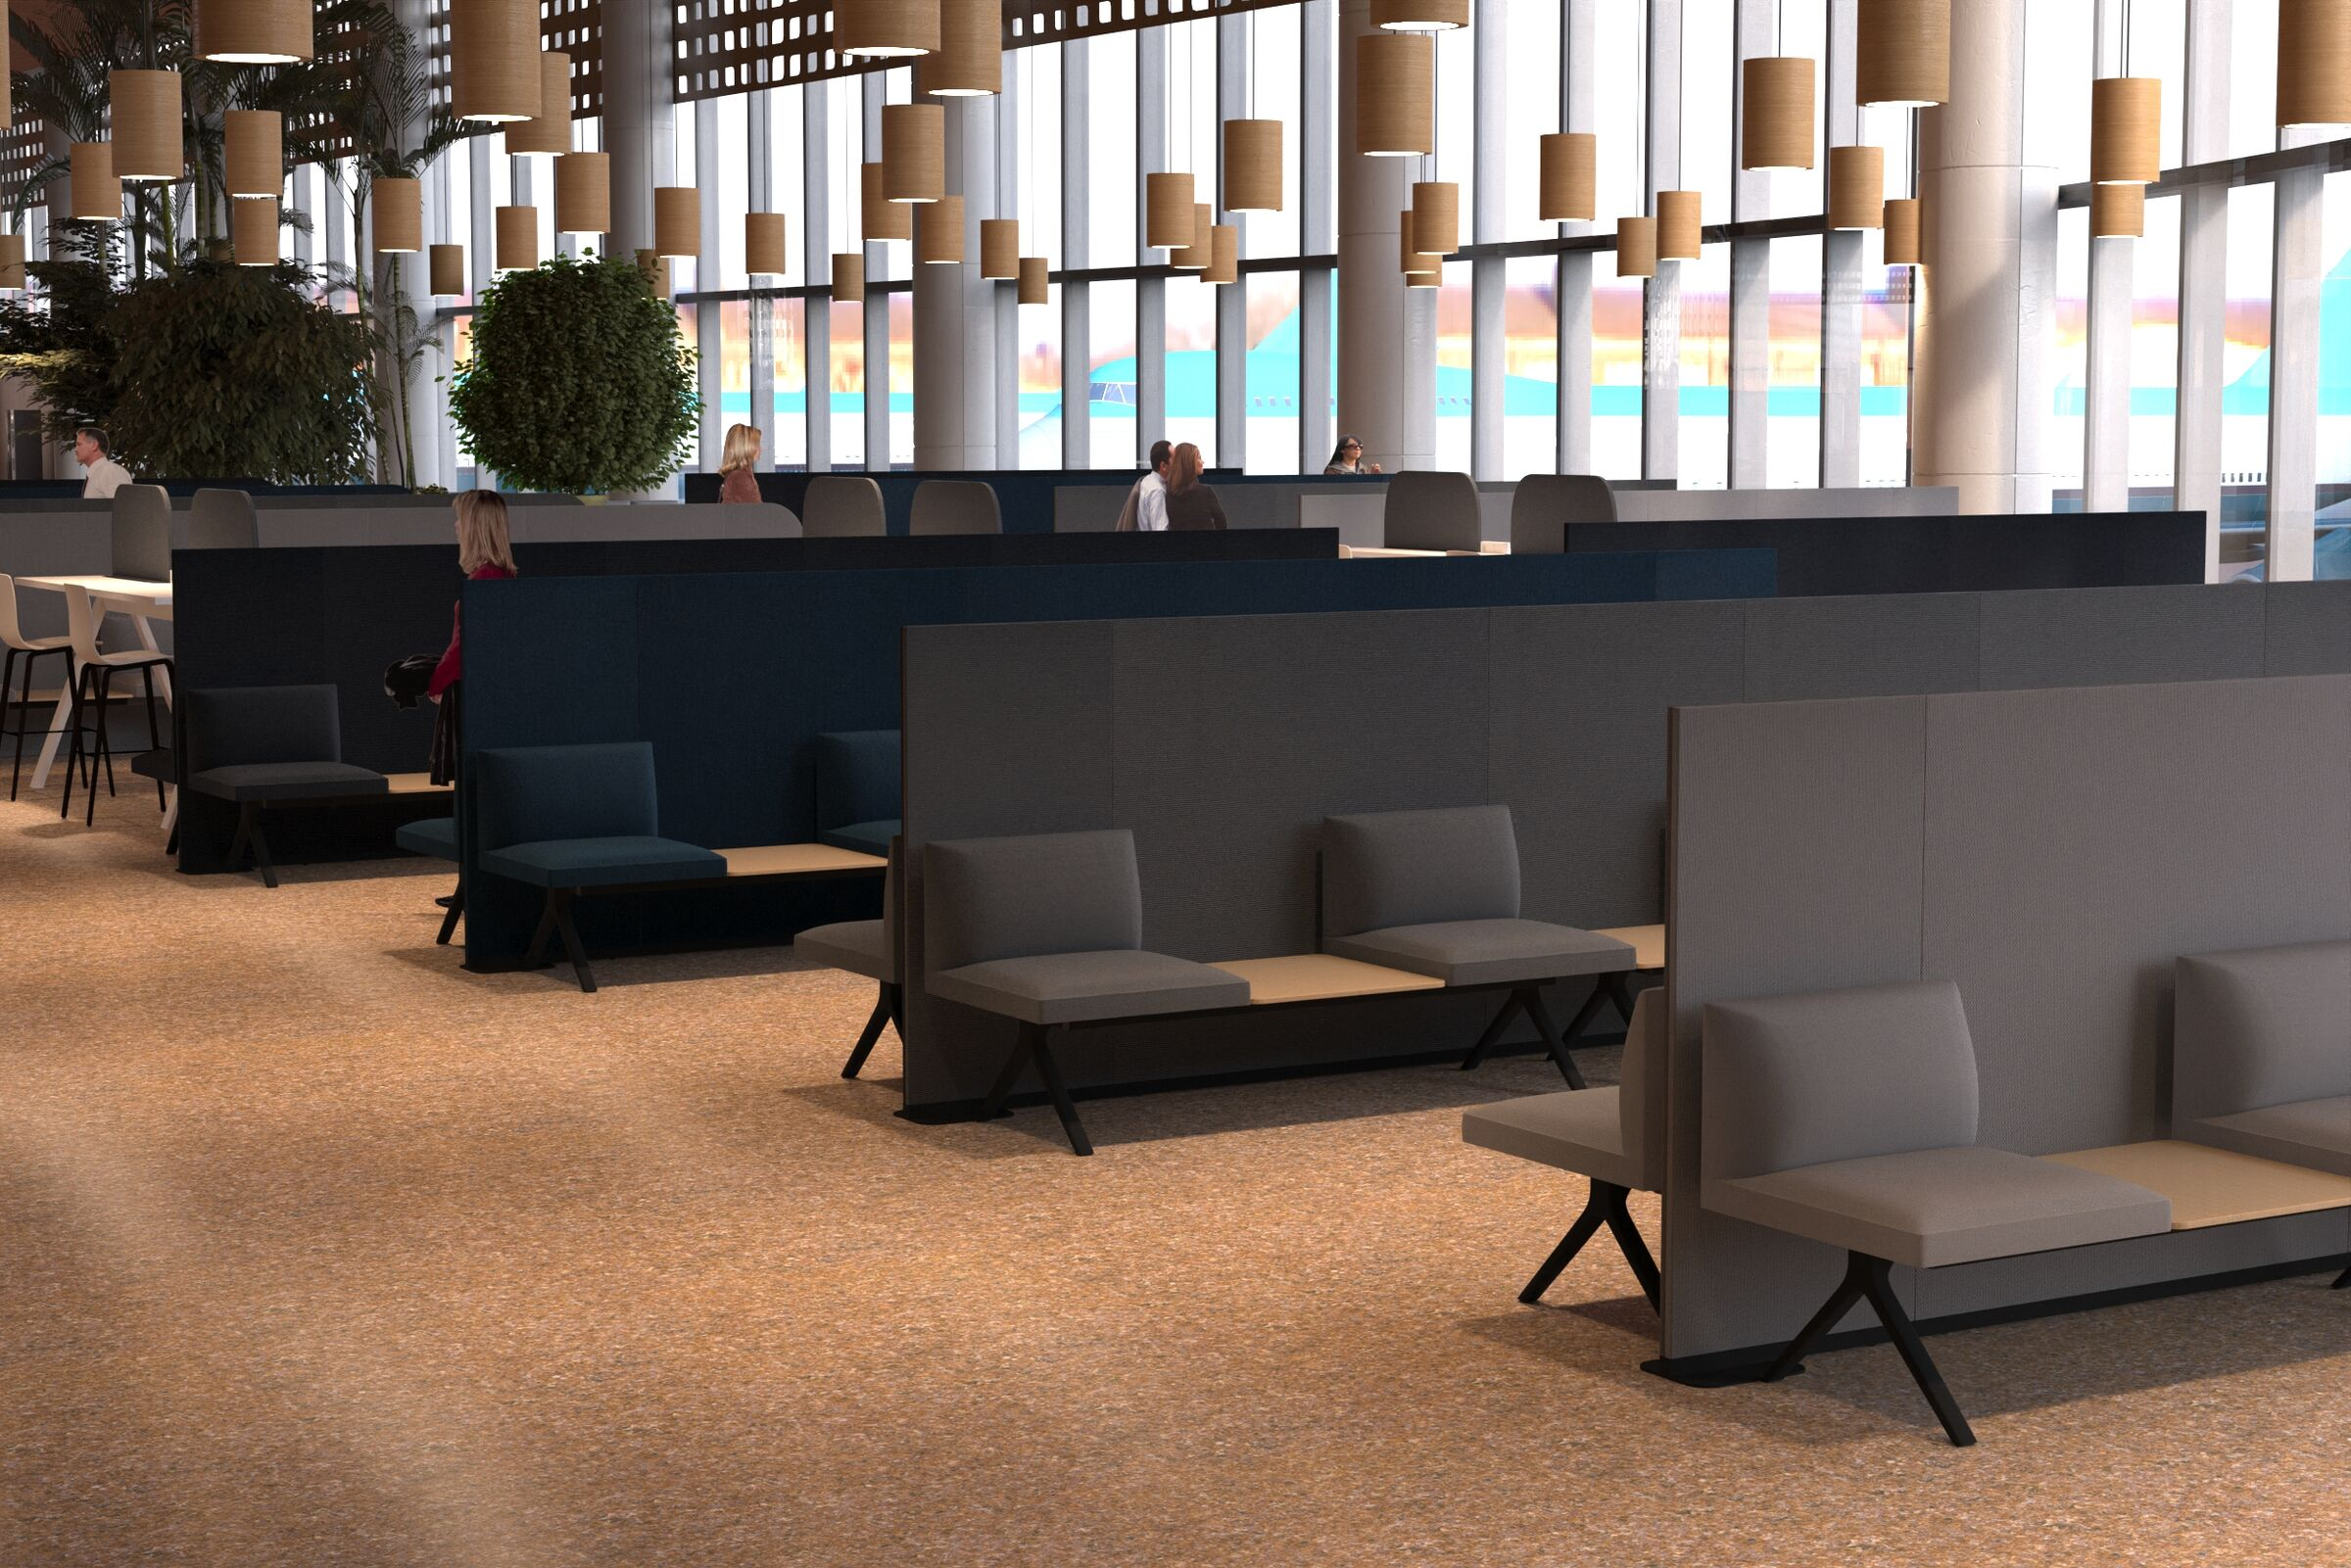 Waiting area_After_Airport Lobby_01.jpg